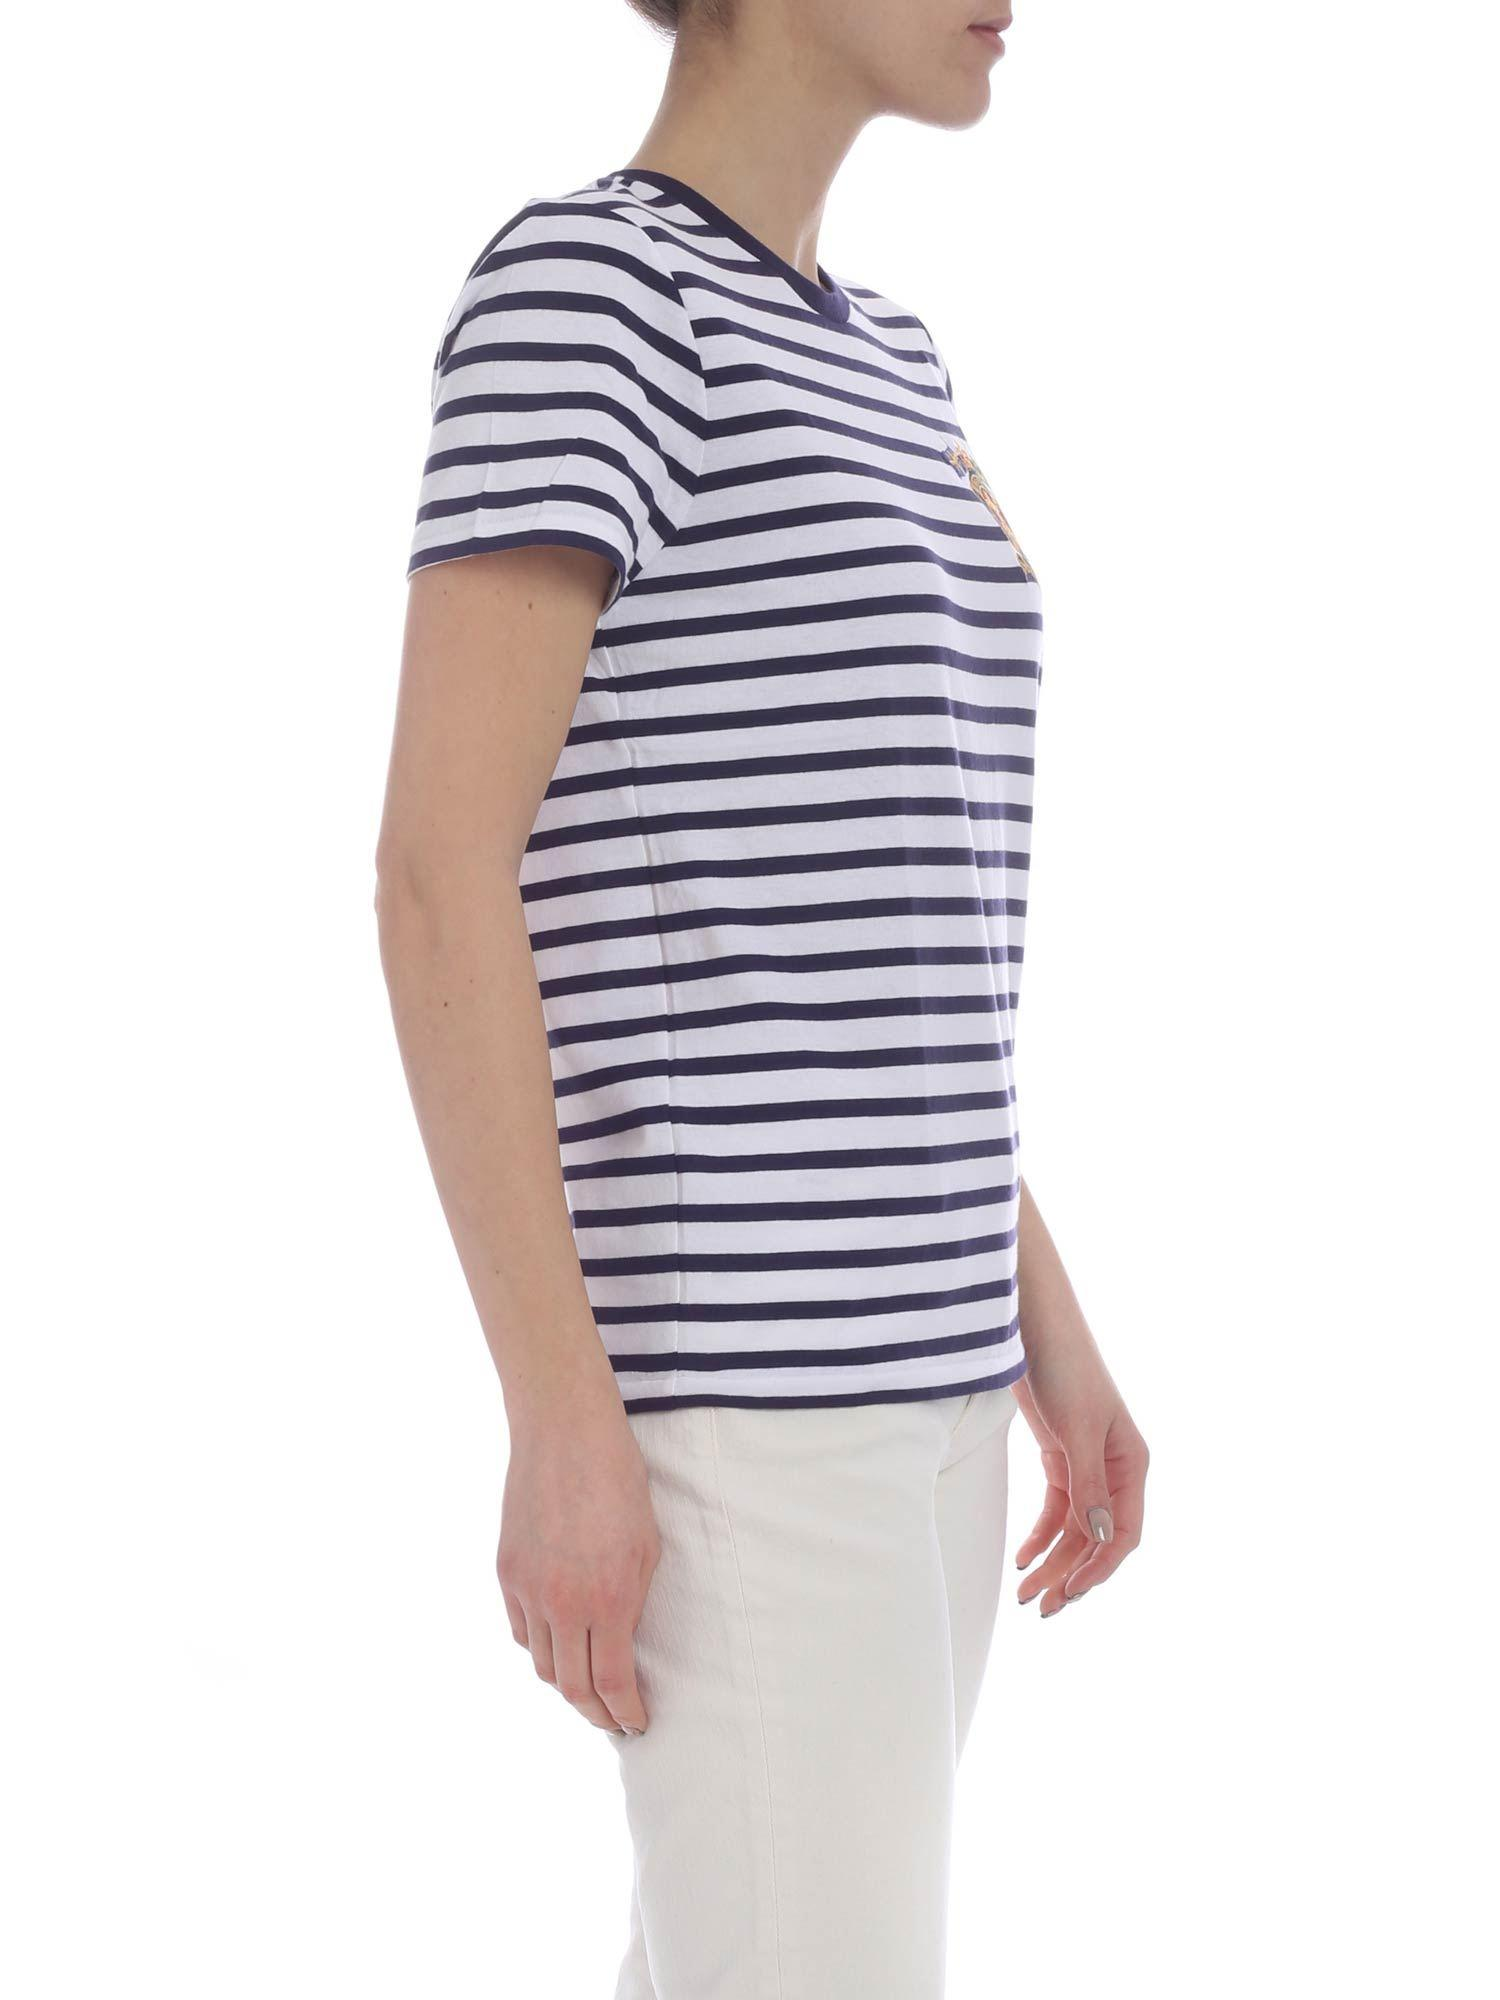 b1ecd6fa3 Polo Ralph Lauren - White And Blue T-shirt With Striped Pattern - Lyst.  View fullscreen